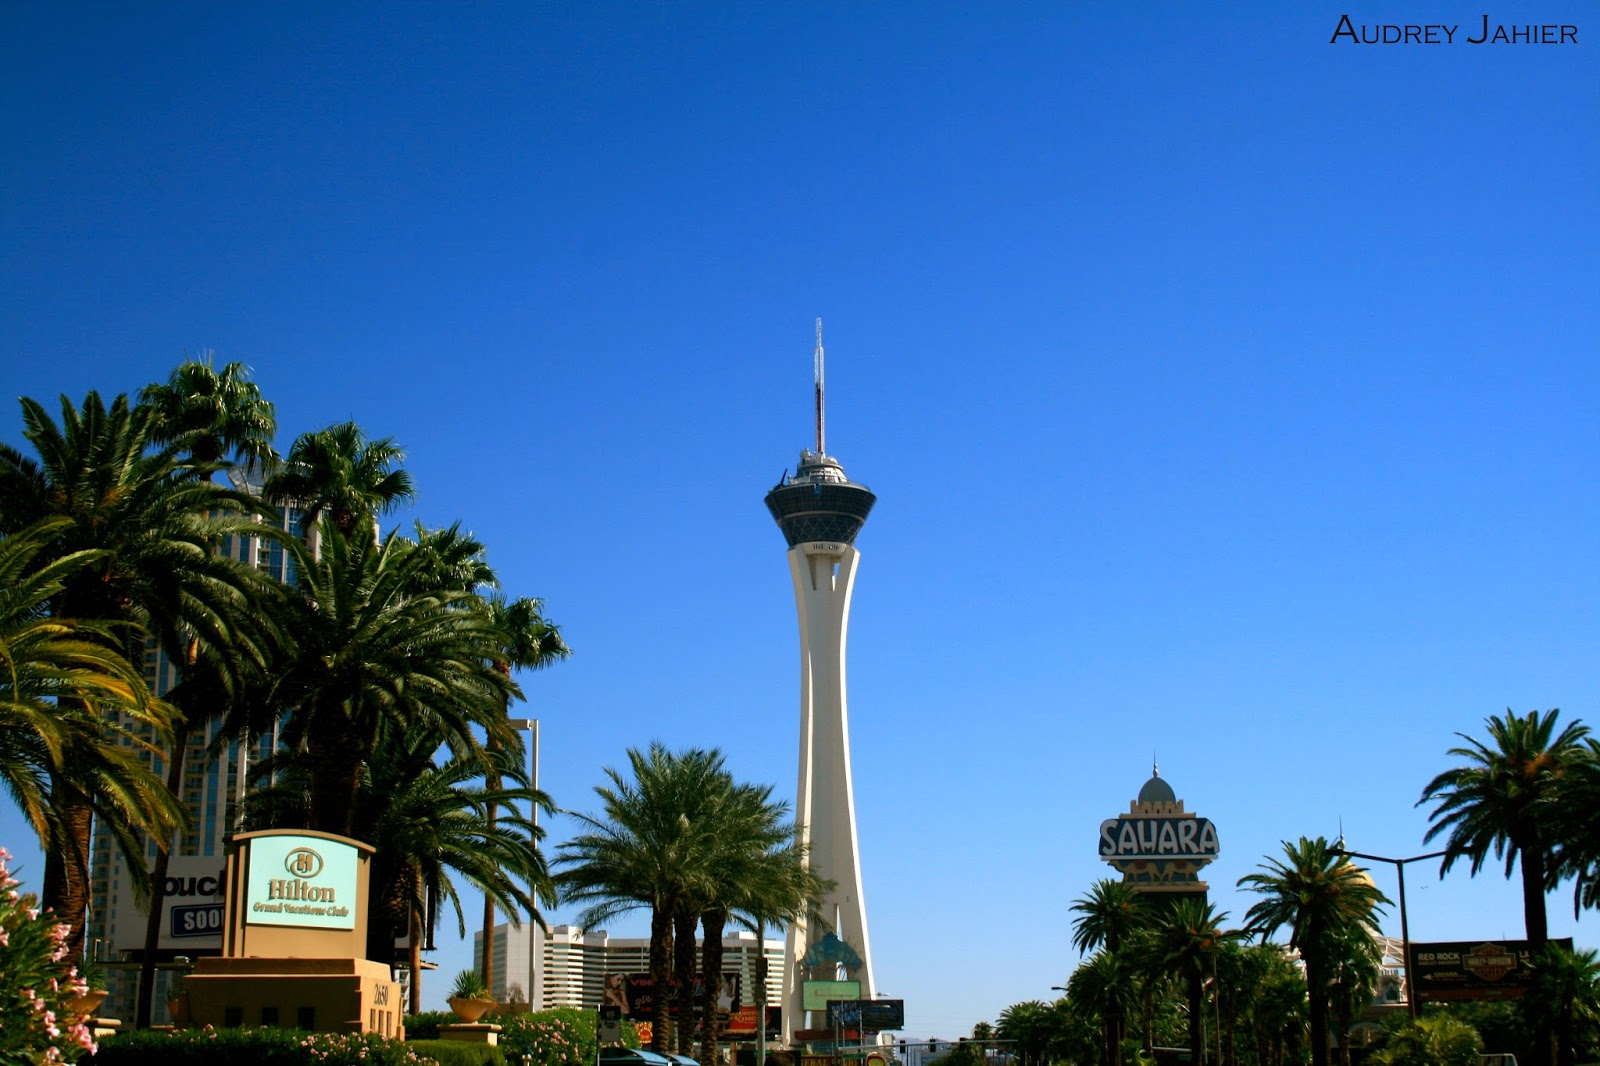 las-vegas-casino-nevada-roadtrip-usa